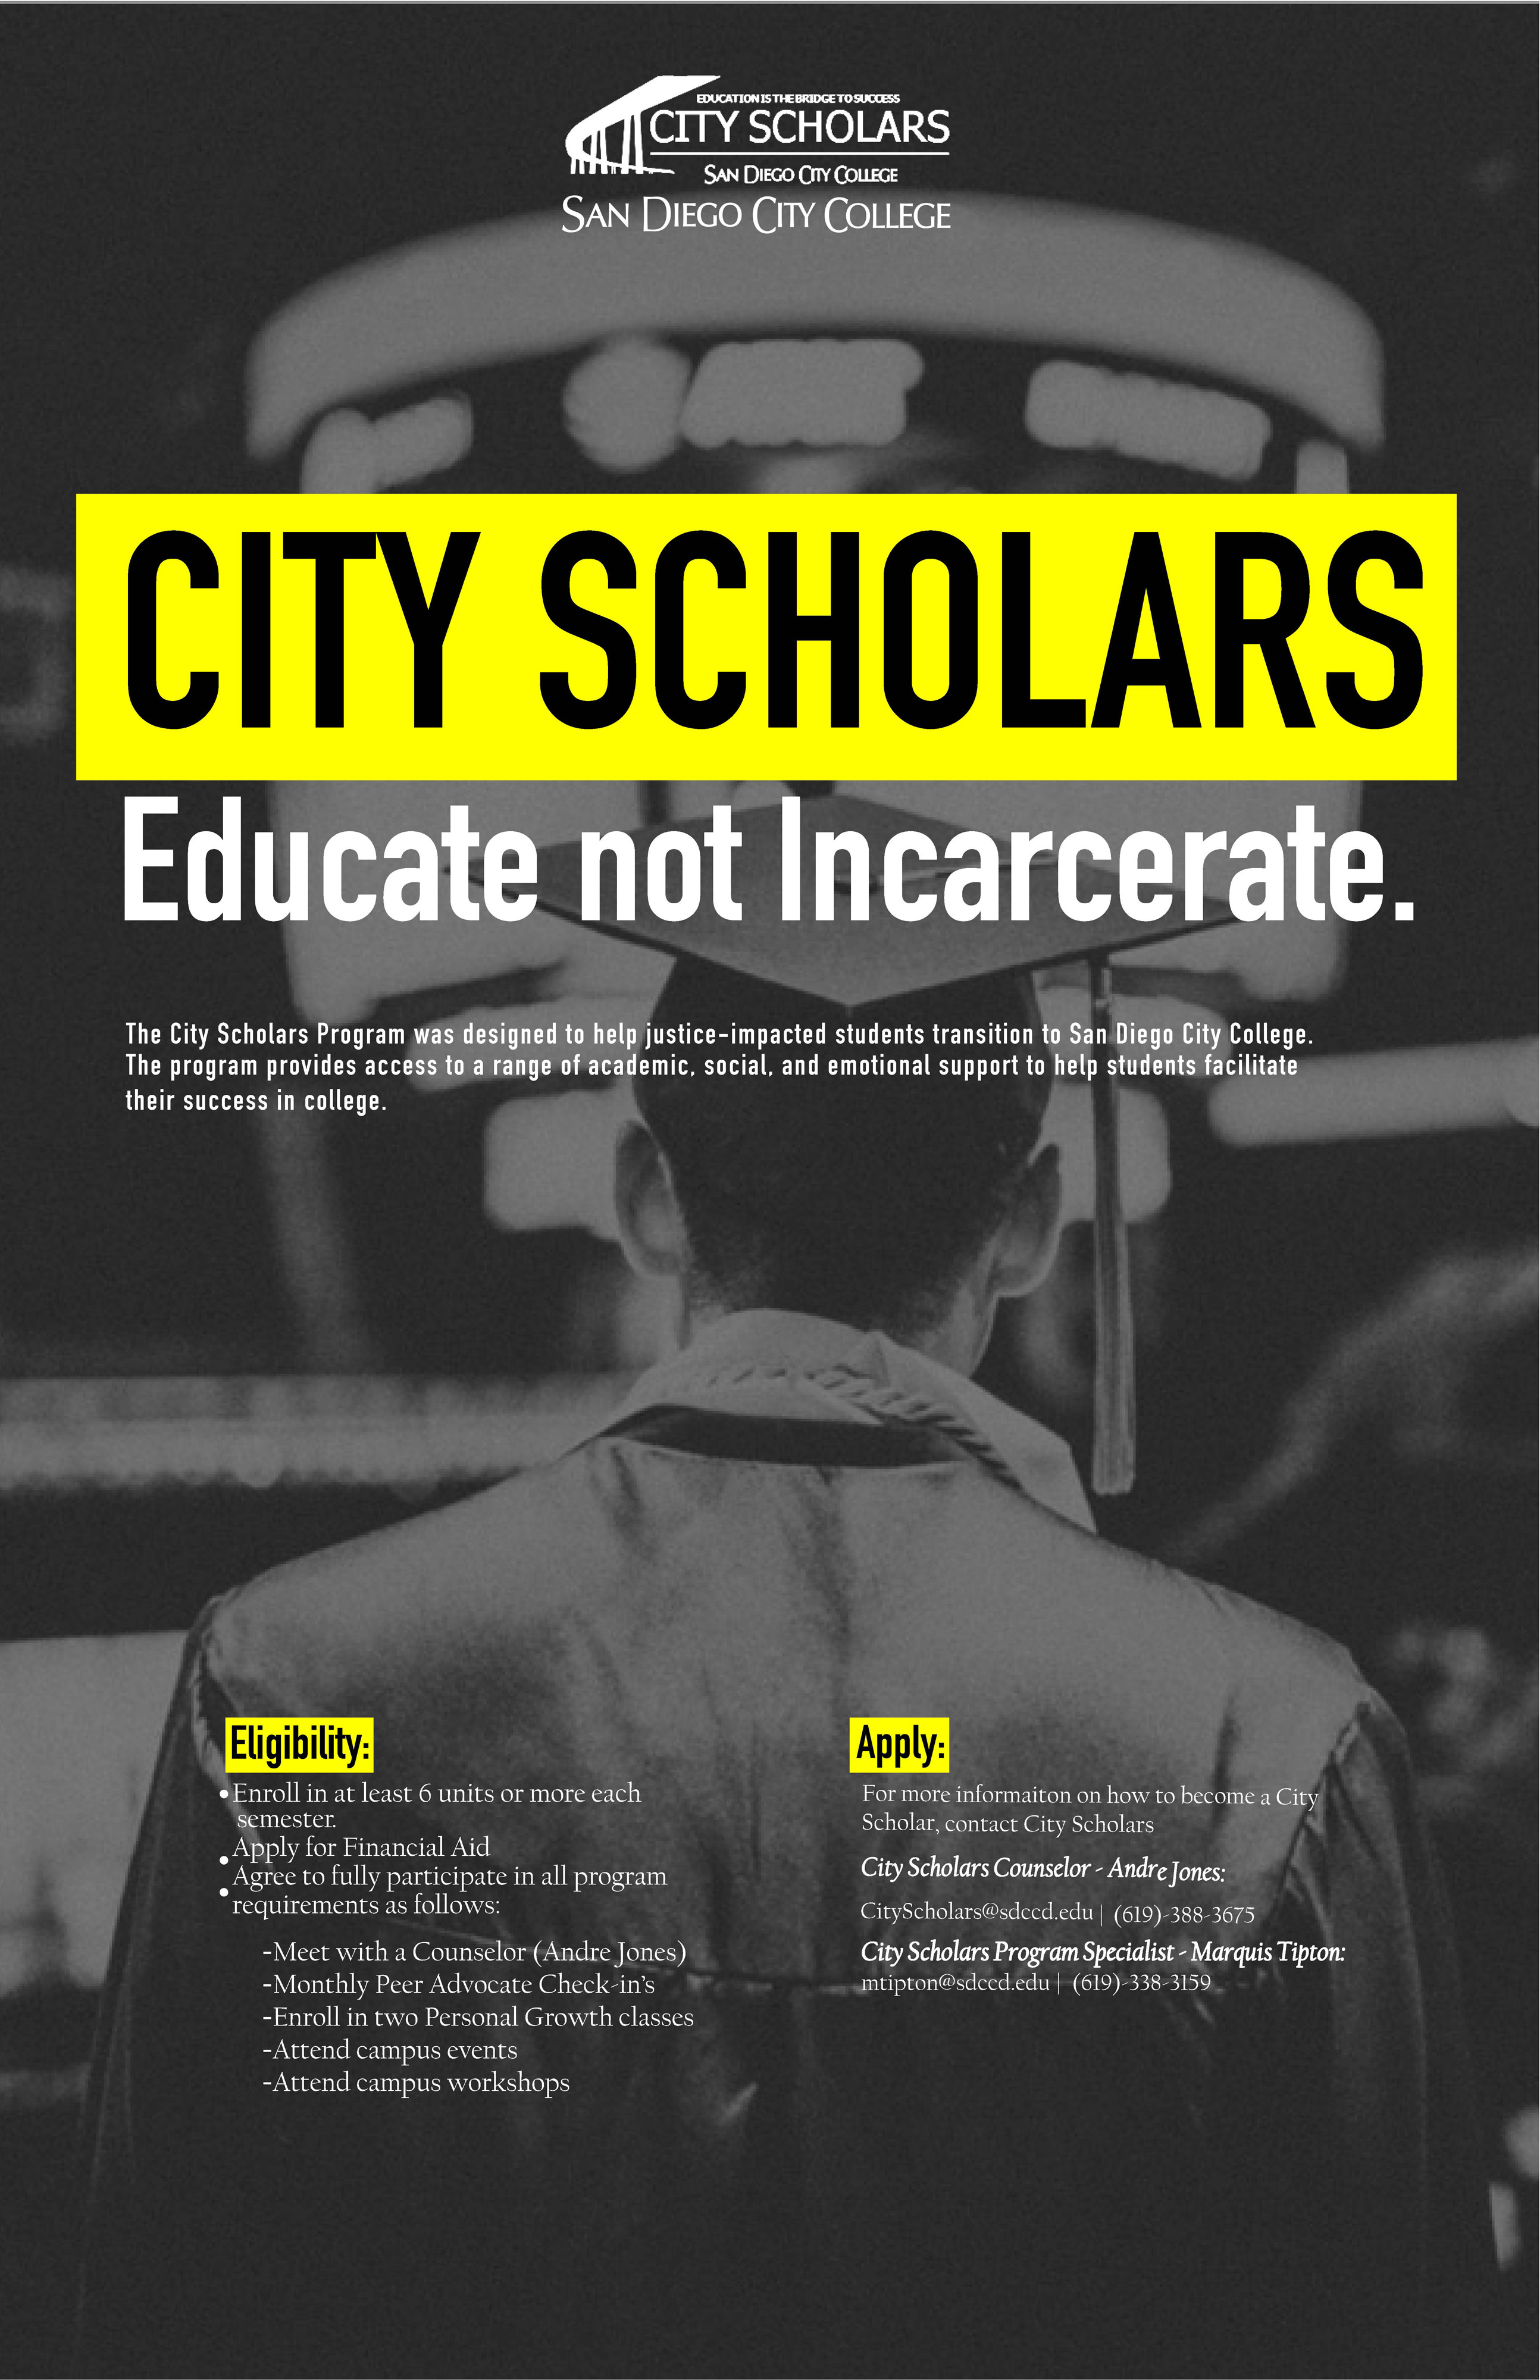 Image of City Scholars Poster